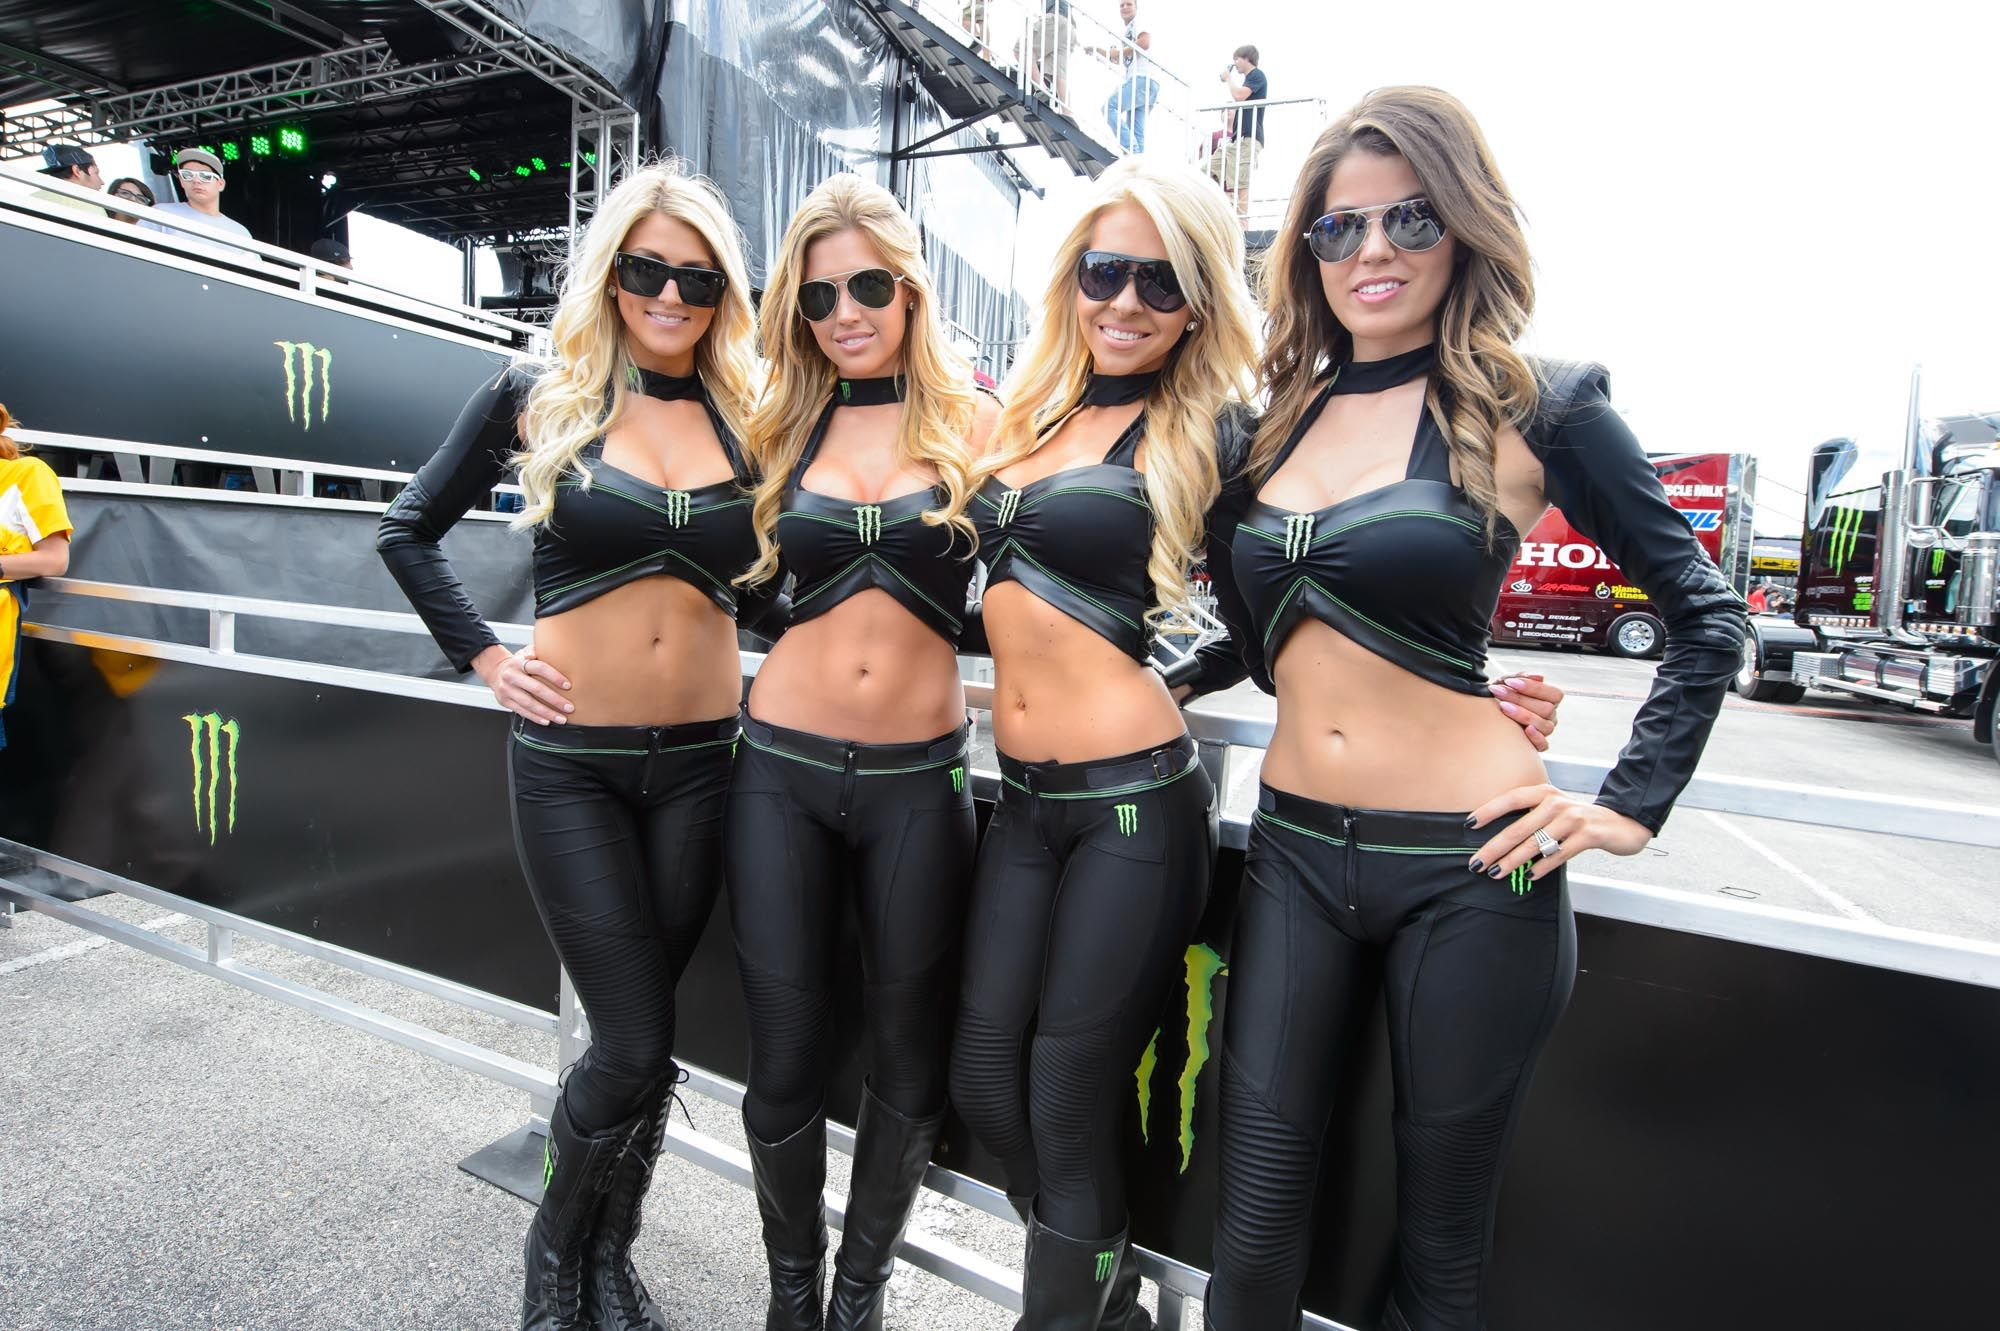 Simply Pictures of hot girls that sponsor monster energy speaking